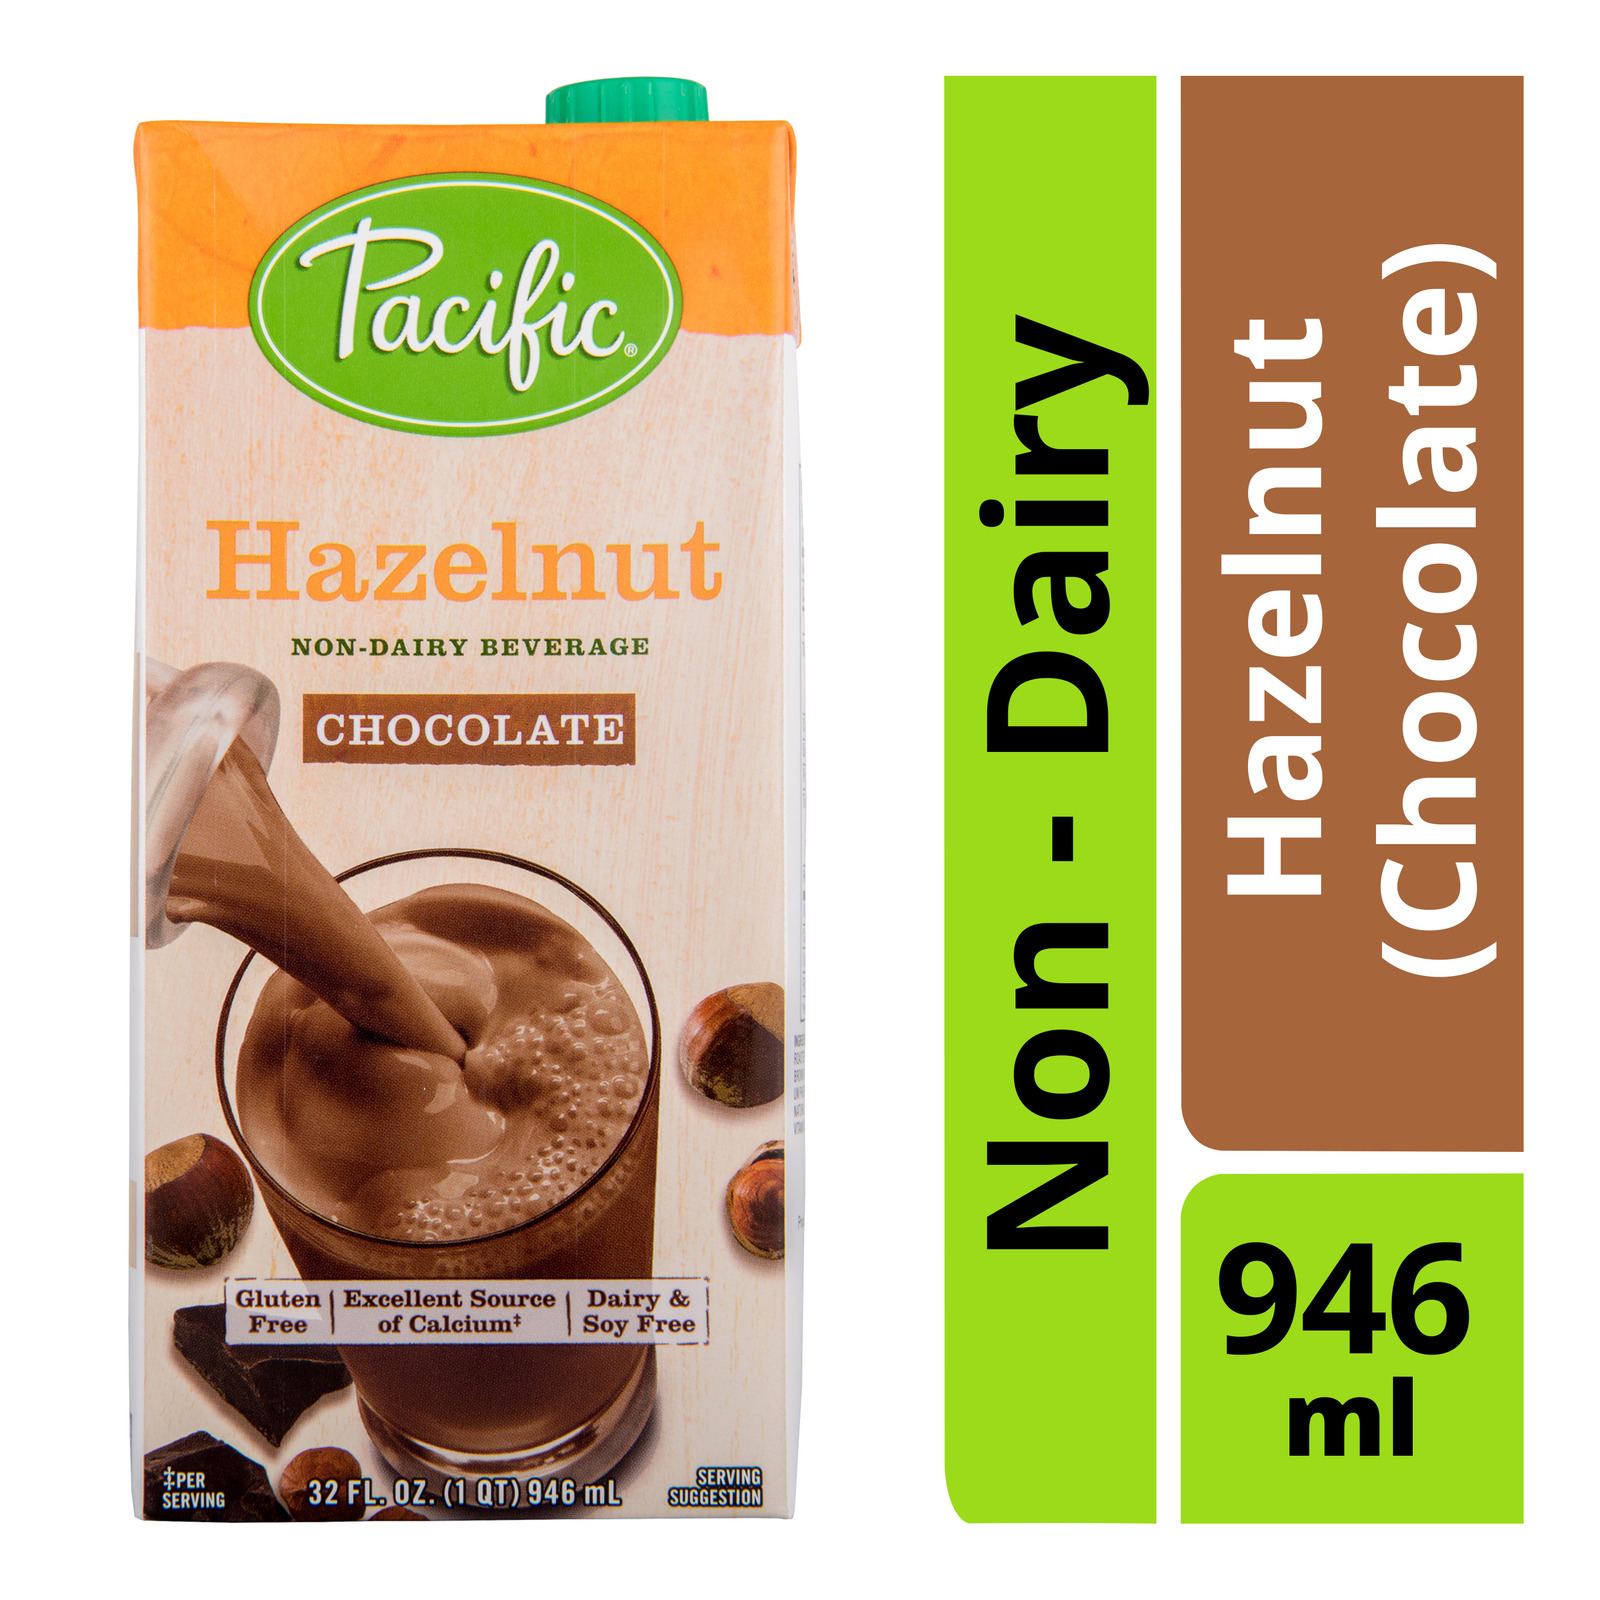 Pacific Original All Natural Hazelnut Non-Dairy Beverage